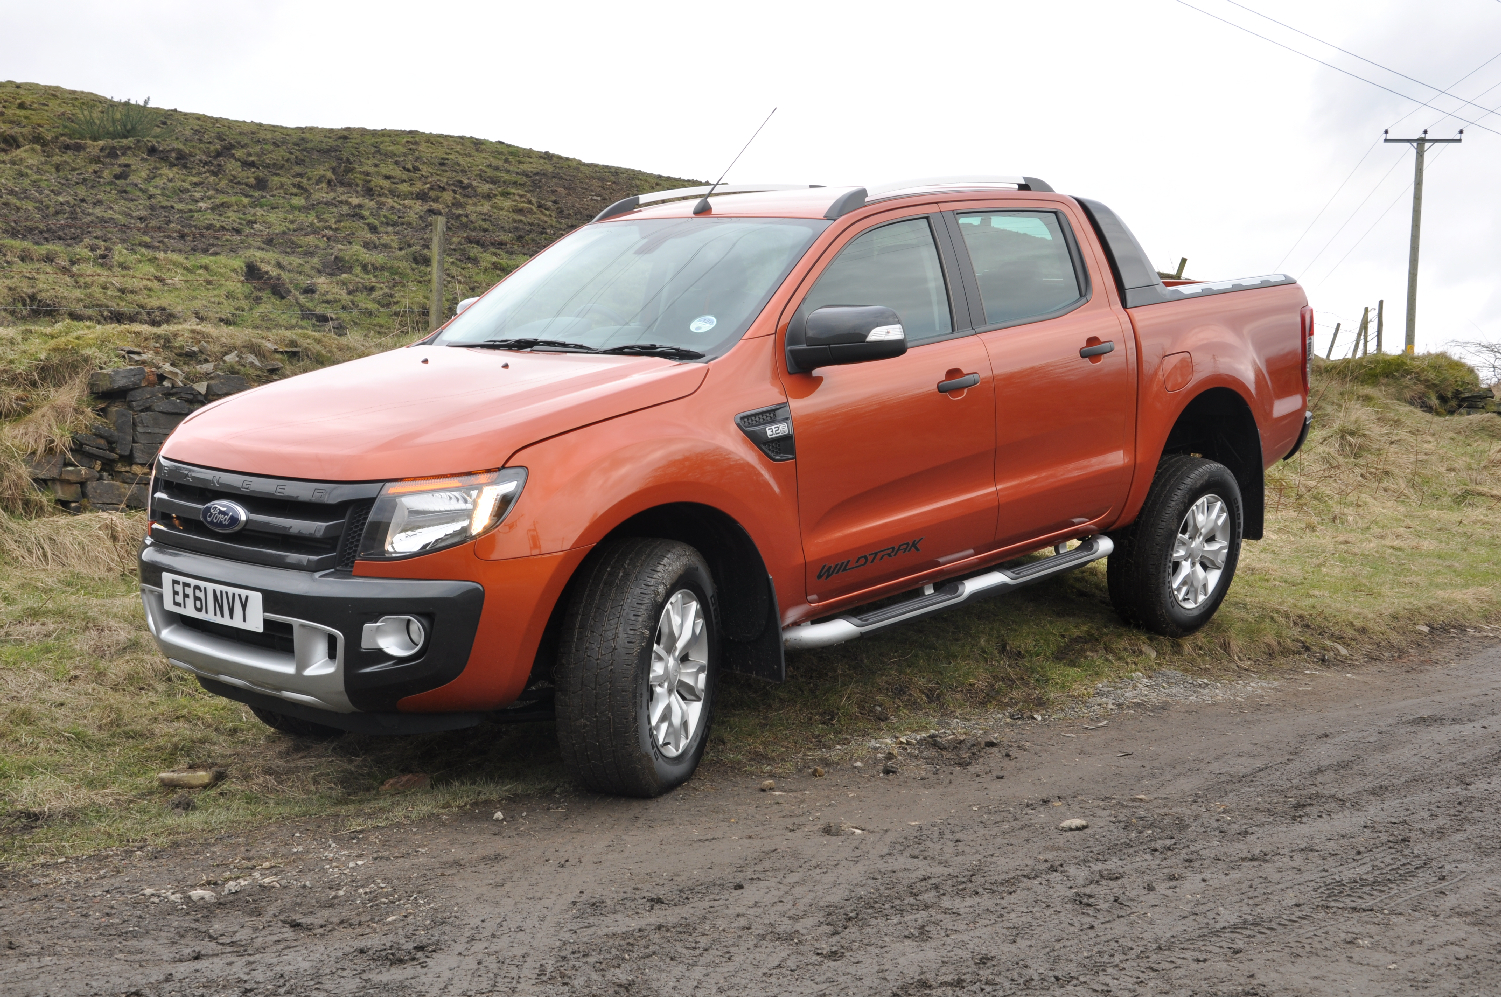 2012 Ford Ranger Wildtrak 3-2 diesel automatic road test review by Oliver Hammond photo - front Ridge Hill 6